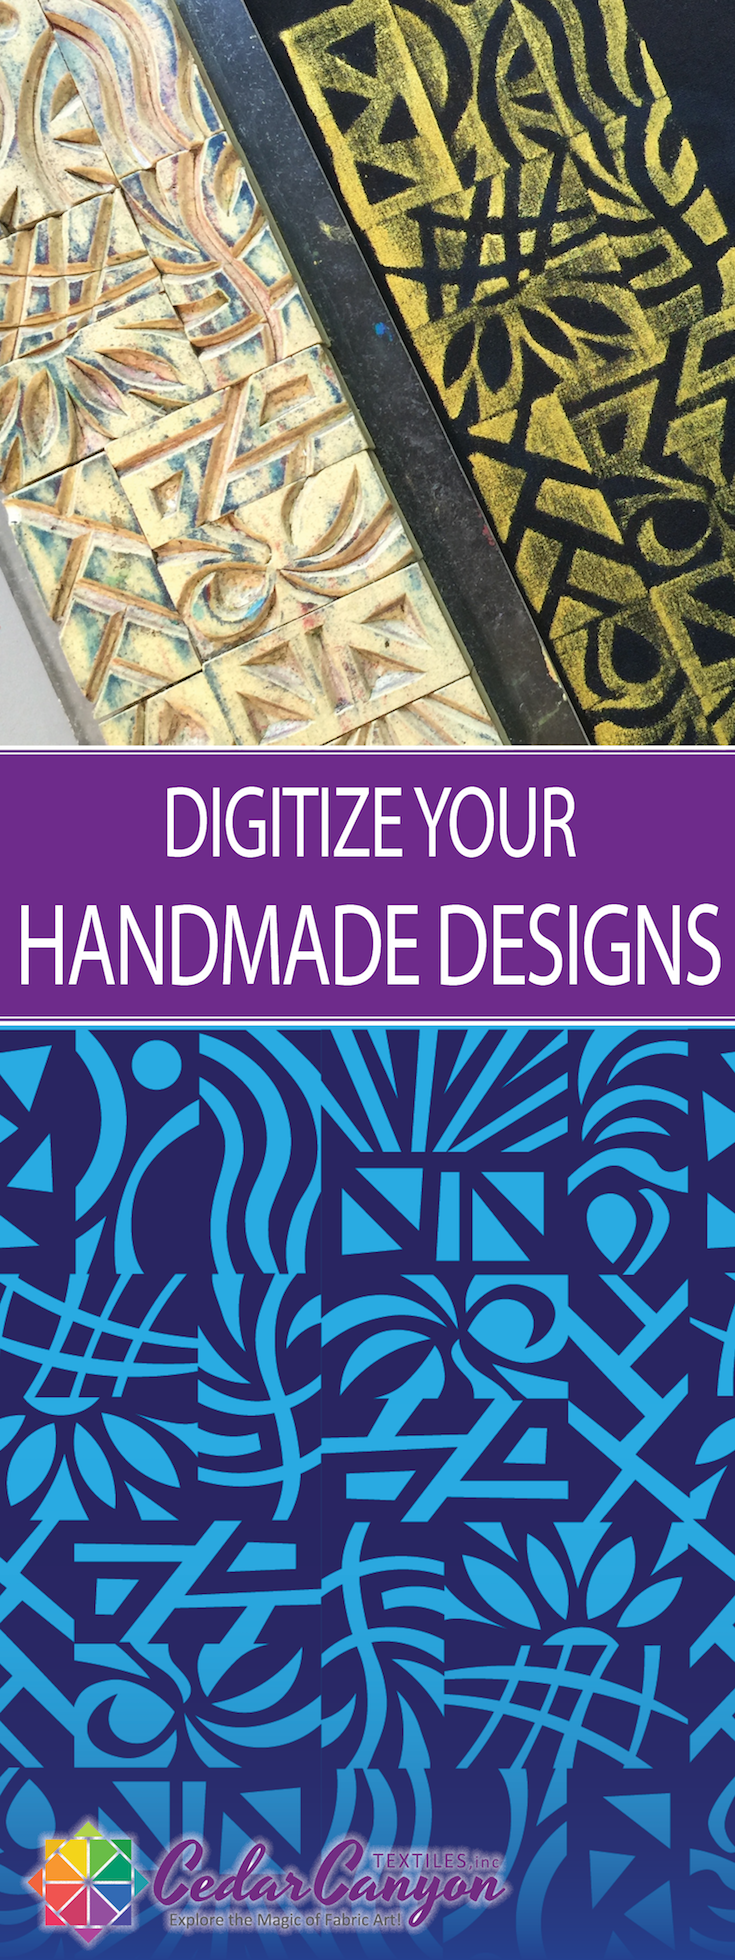 "From a hand-carved stamp to Carved Stamp Graphics: A straightforward strategy for ""importing"" handmade designs for use with Silhouette Cameo cutters."